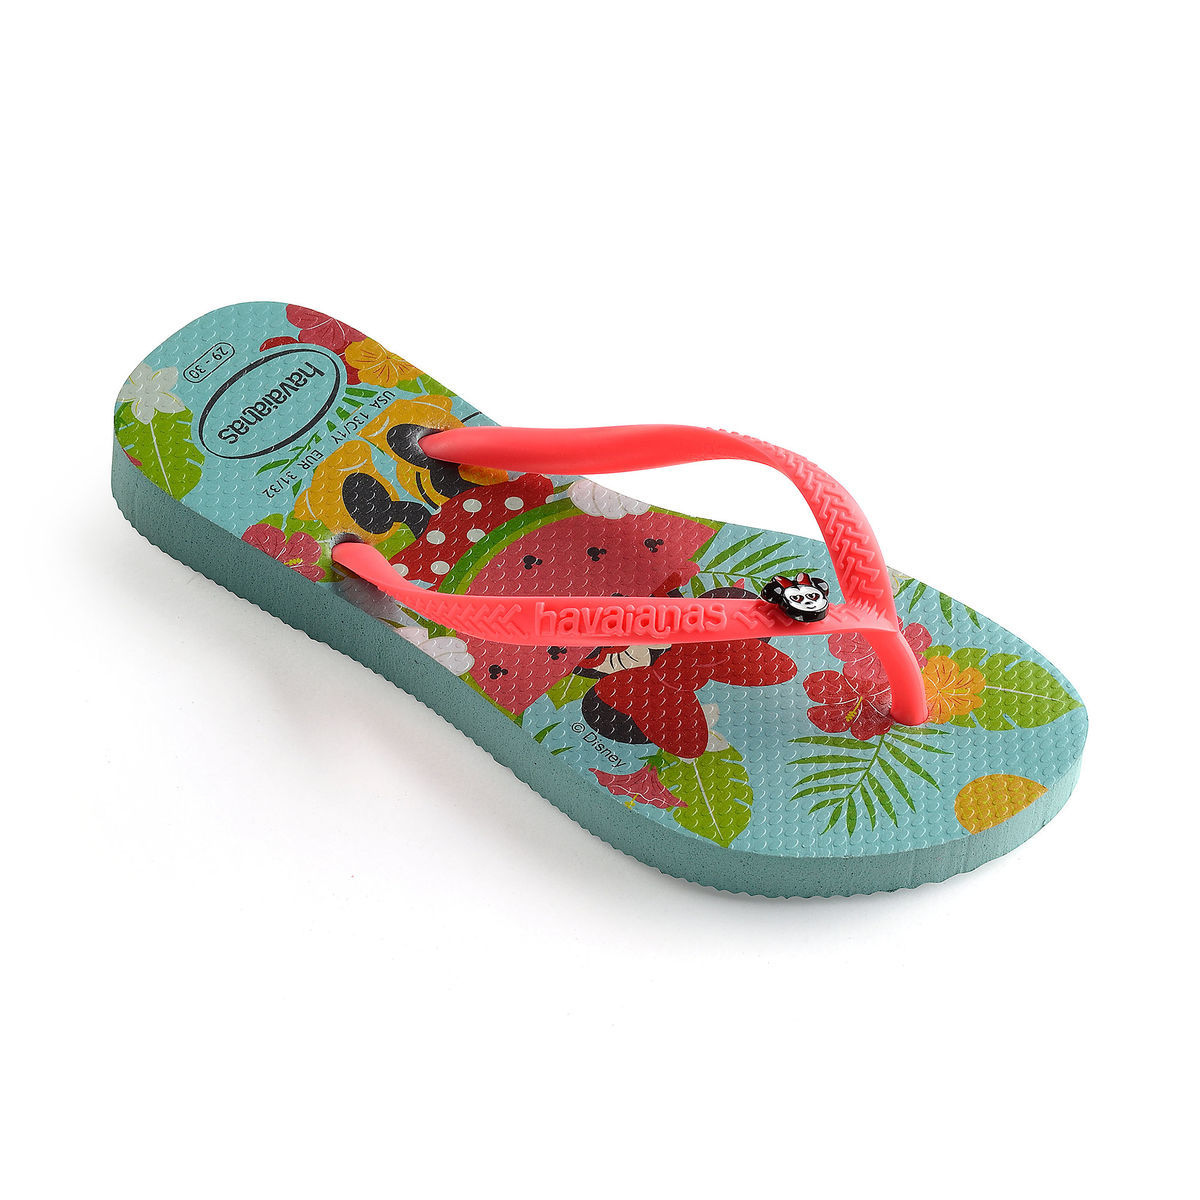 8bb8c0f9101d43 Product Image of Minnie Mouse Tropical Flip Flops for Kids by Havaianas   1